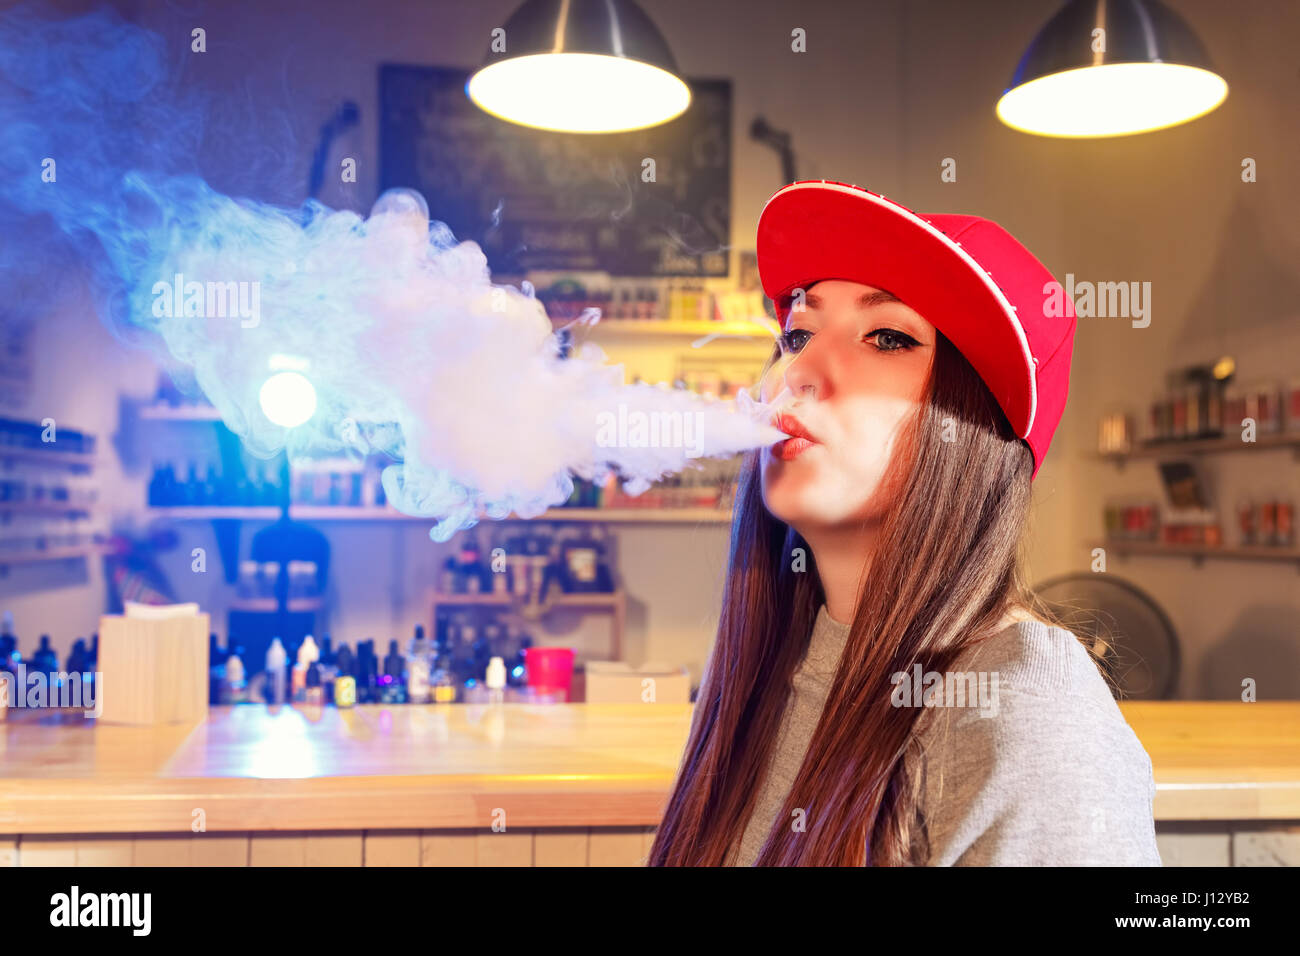 Young pretty woman in red cap smoke an electronic cigarette at the vape shop - Stock Image